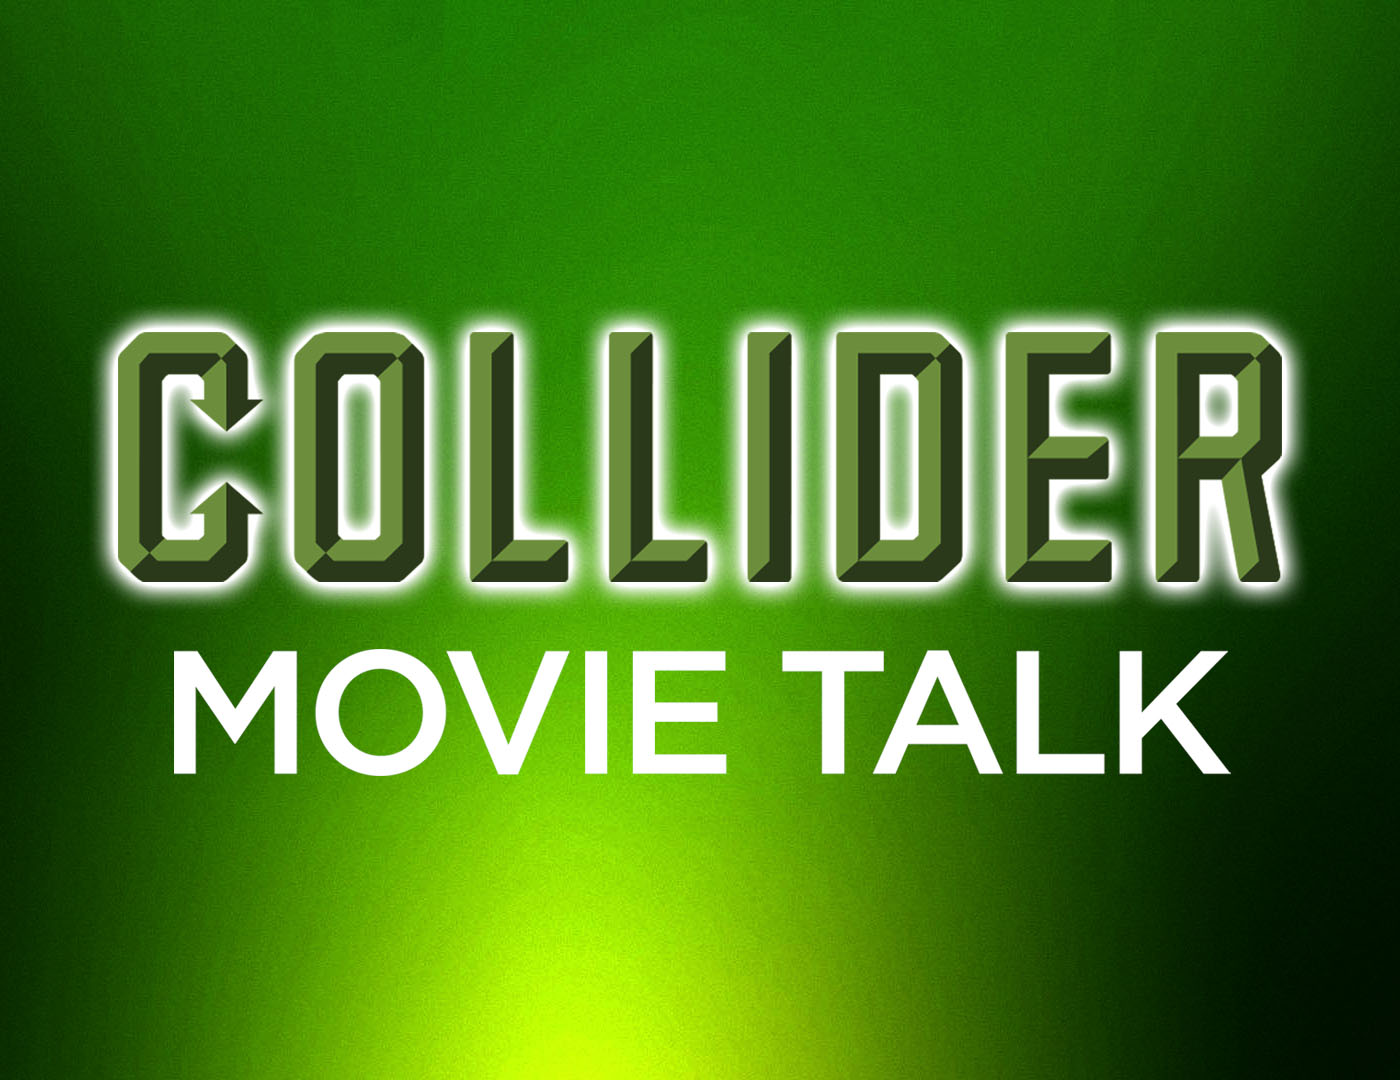 Collider Movie Talk - Jennifer Lawrence Talks About Potential Return To X-Men Franchise